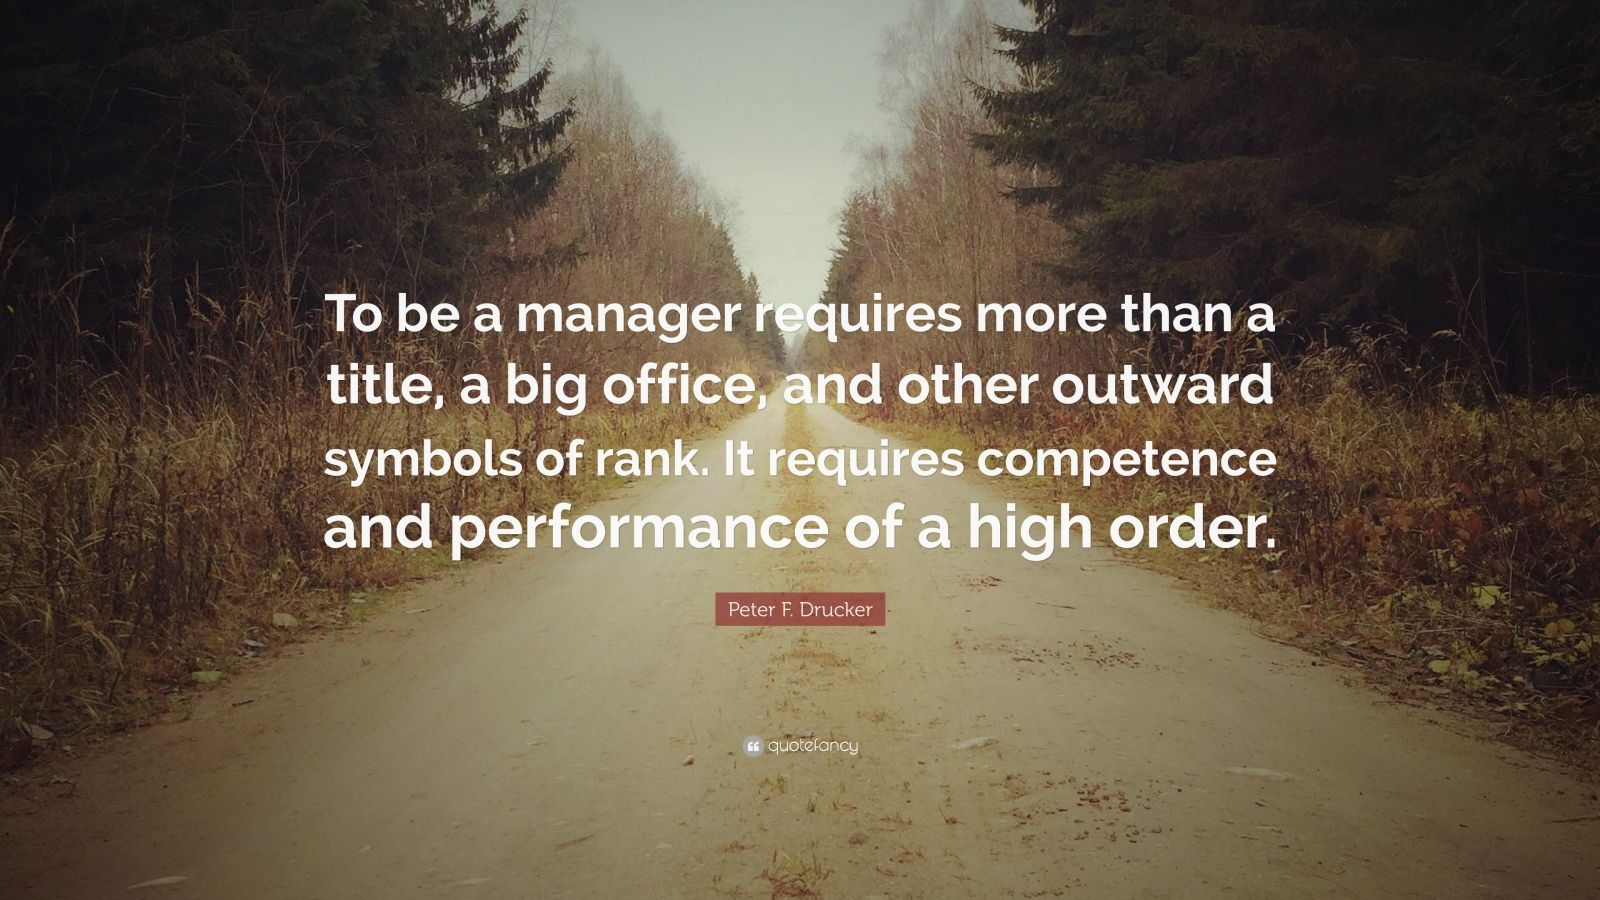 """Peter F. Drucker Quote: """"To be a manager requires more than a title, a big office, and other outward symbols of rank. It requires competence and performance of a high order."""""""